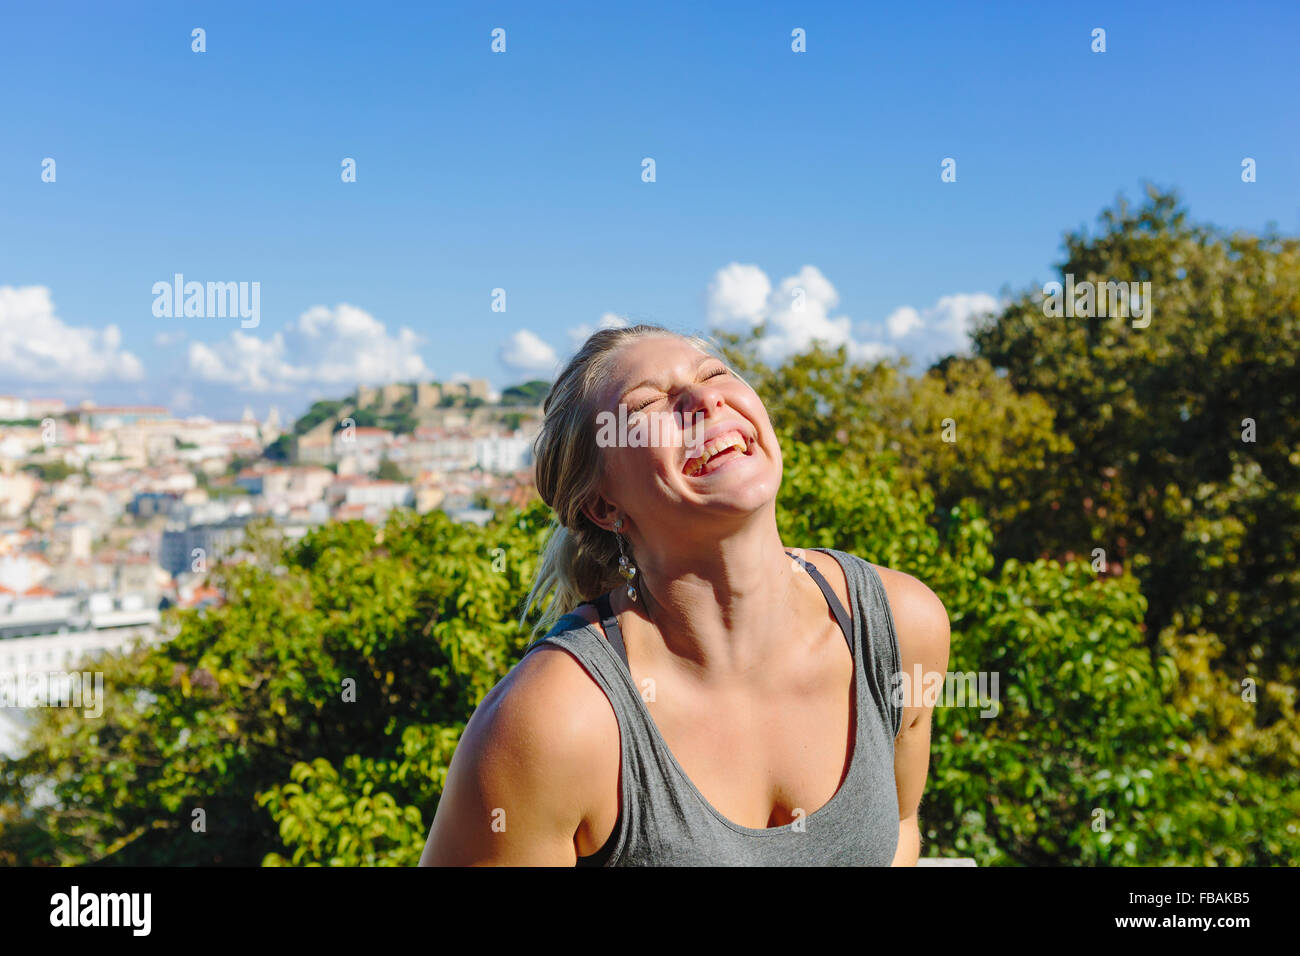 Portugal, Lisbonne, Portrait of young woman laughing Photo Stock